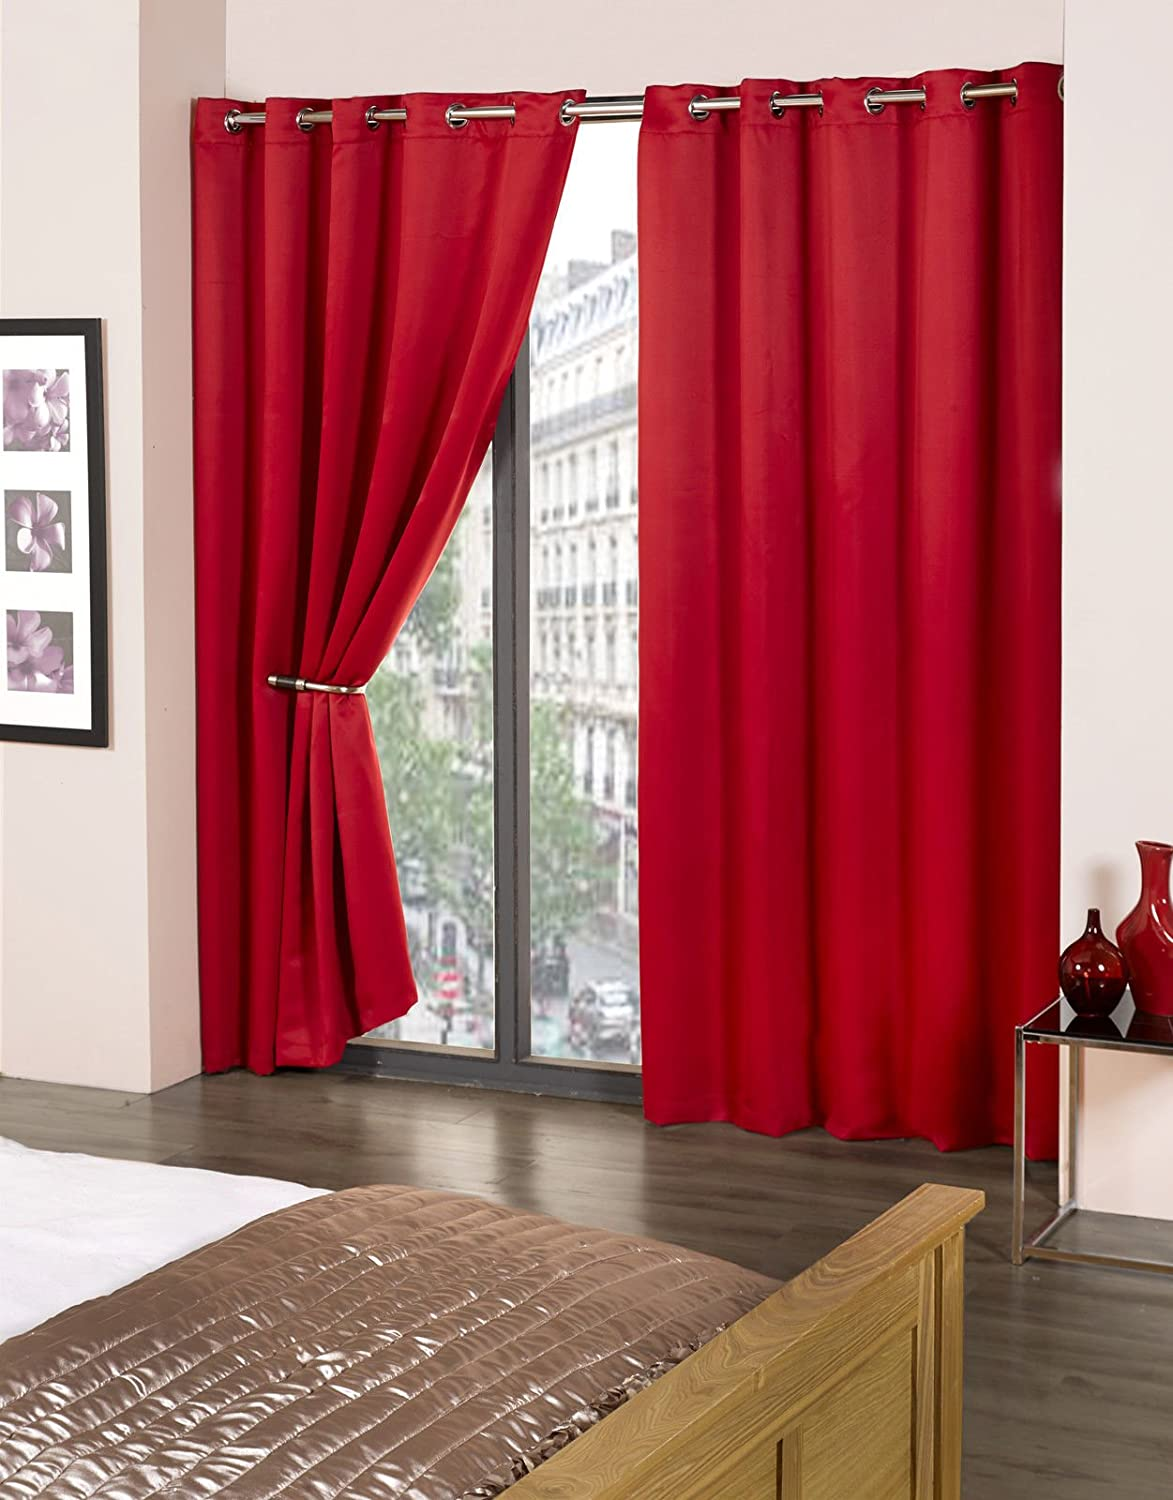 jacquard p blackout curtains luxury pattern red embroidered chenille